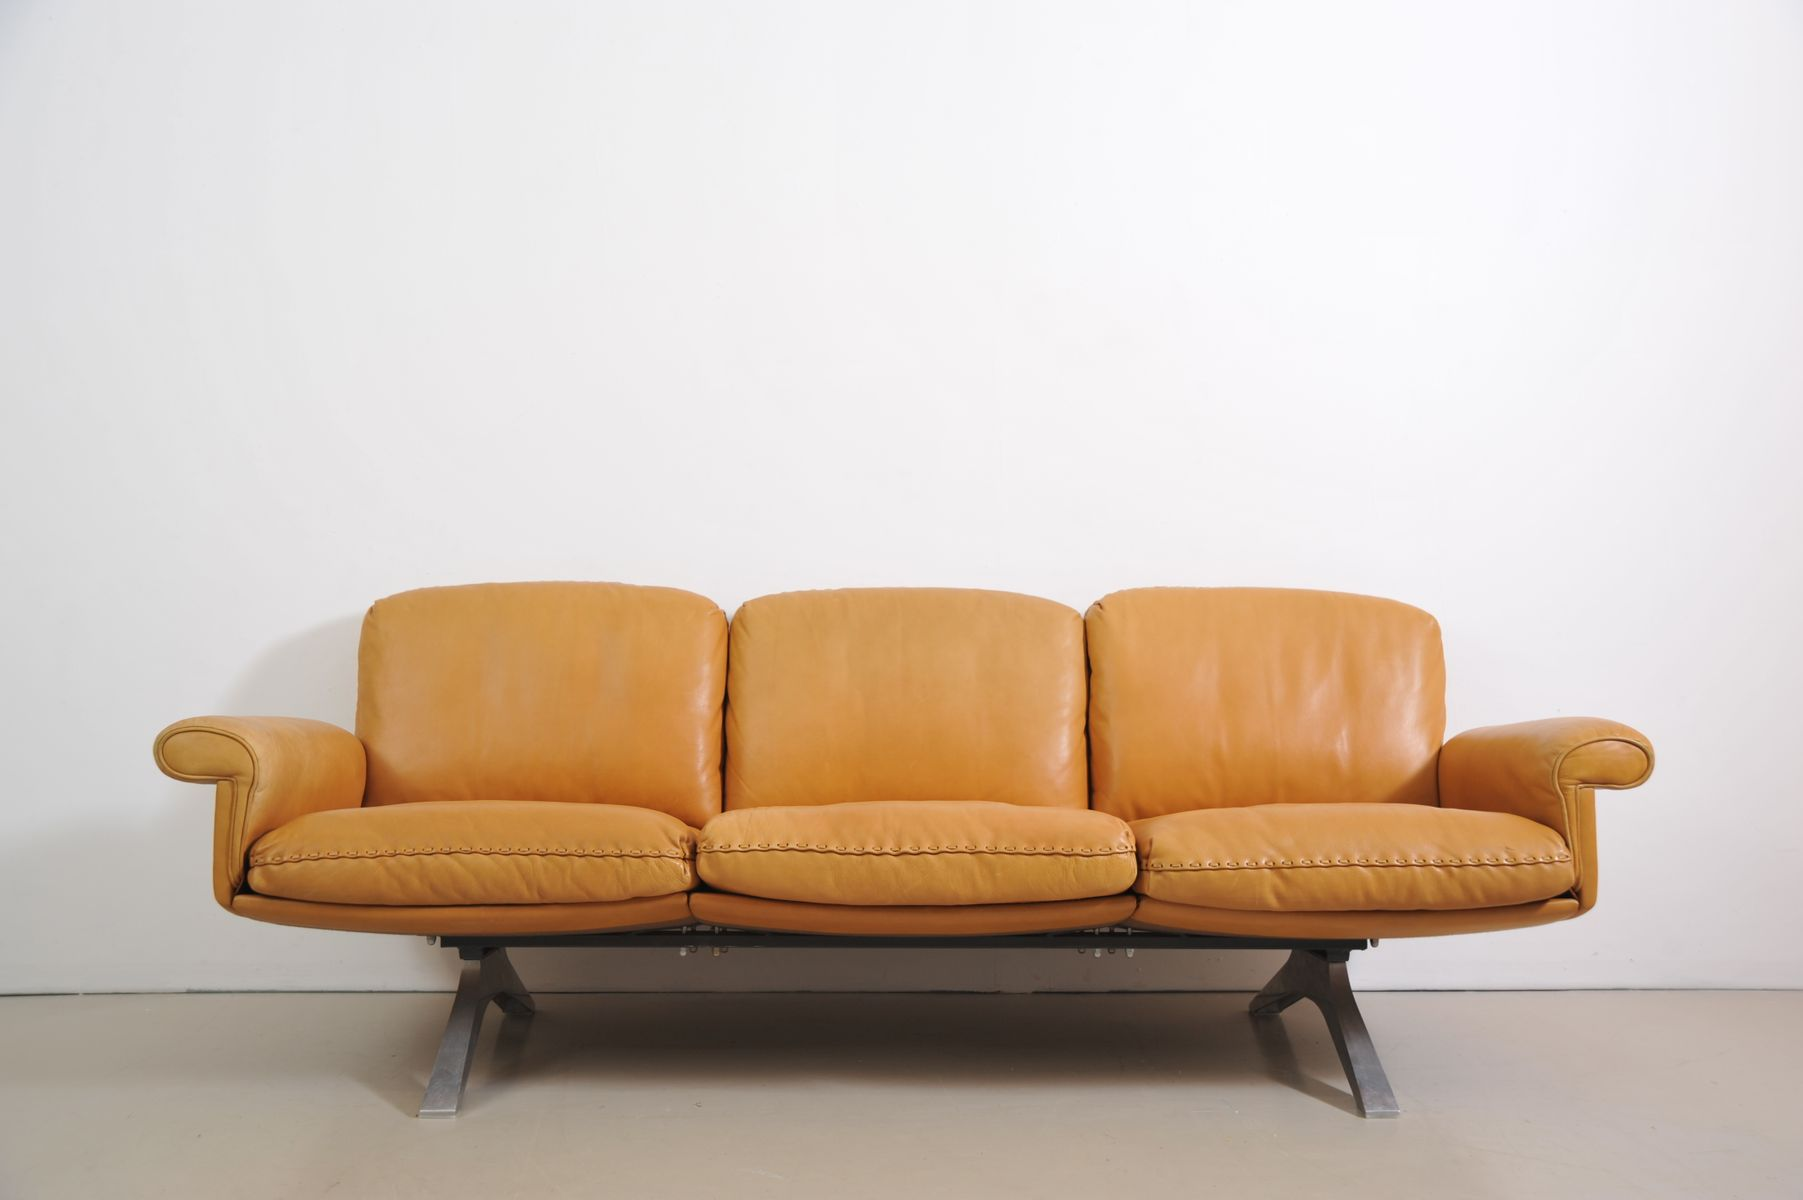 de sede sofa vintage house of fraser leather beds ds31 from for sale at pamono